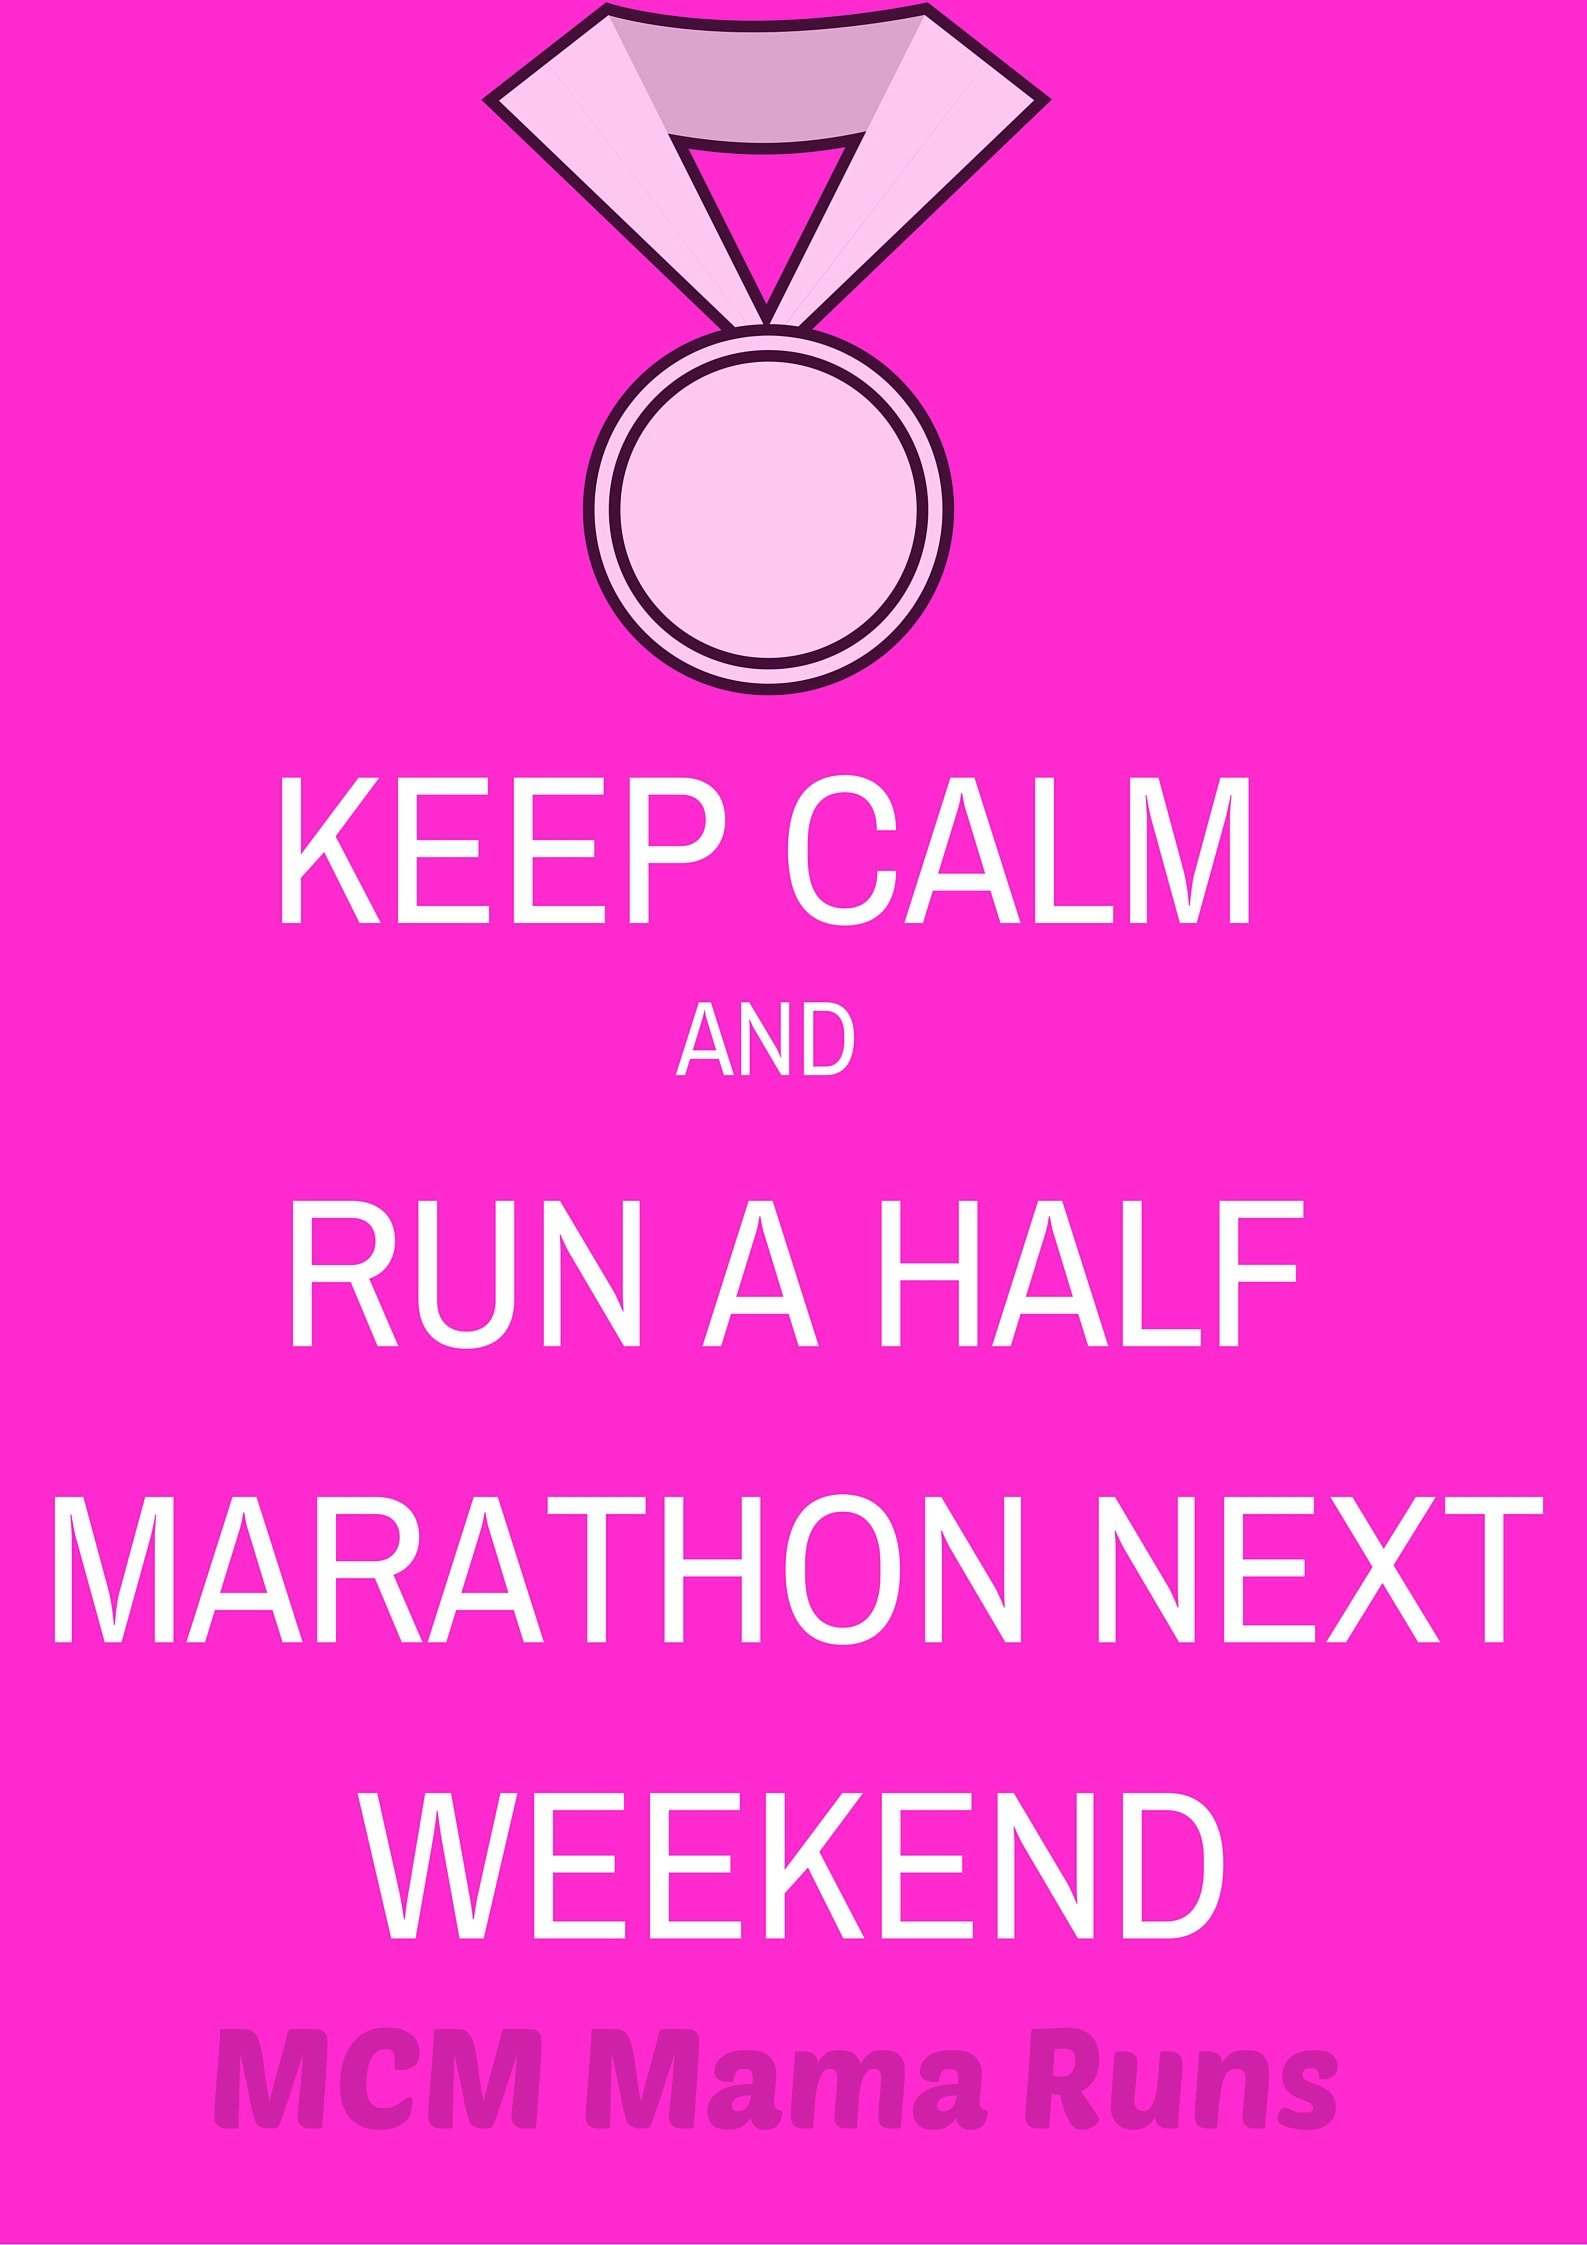 Keep Calm half marathon